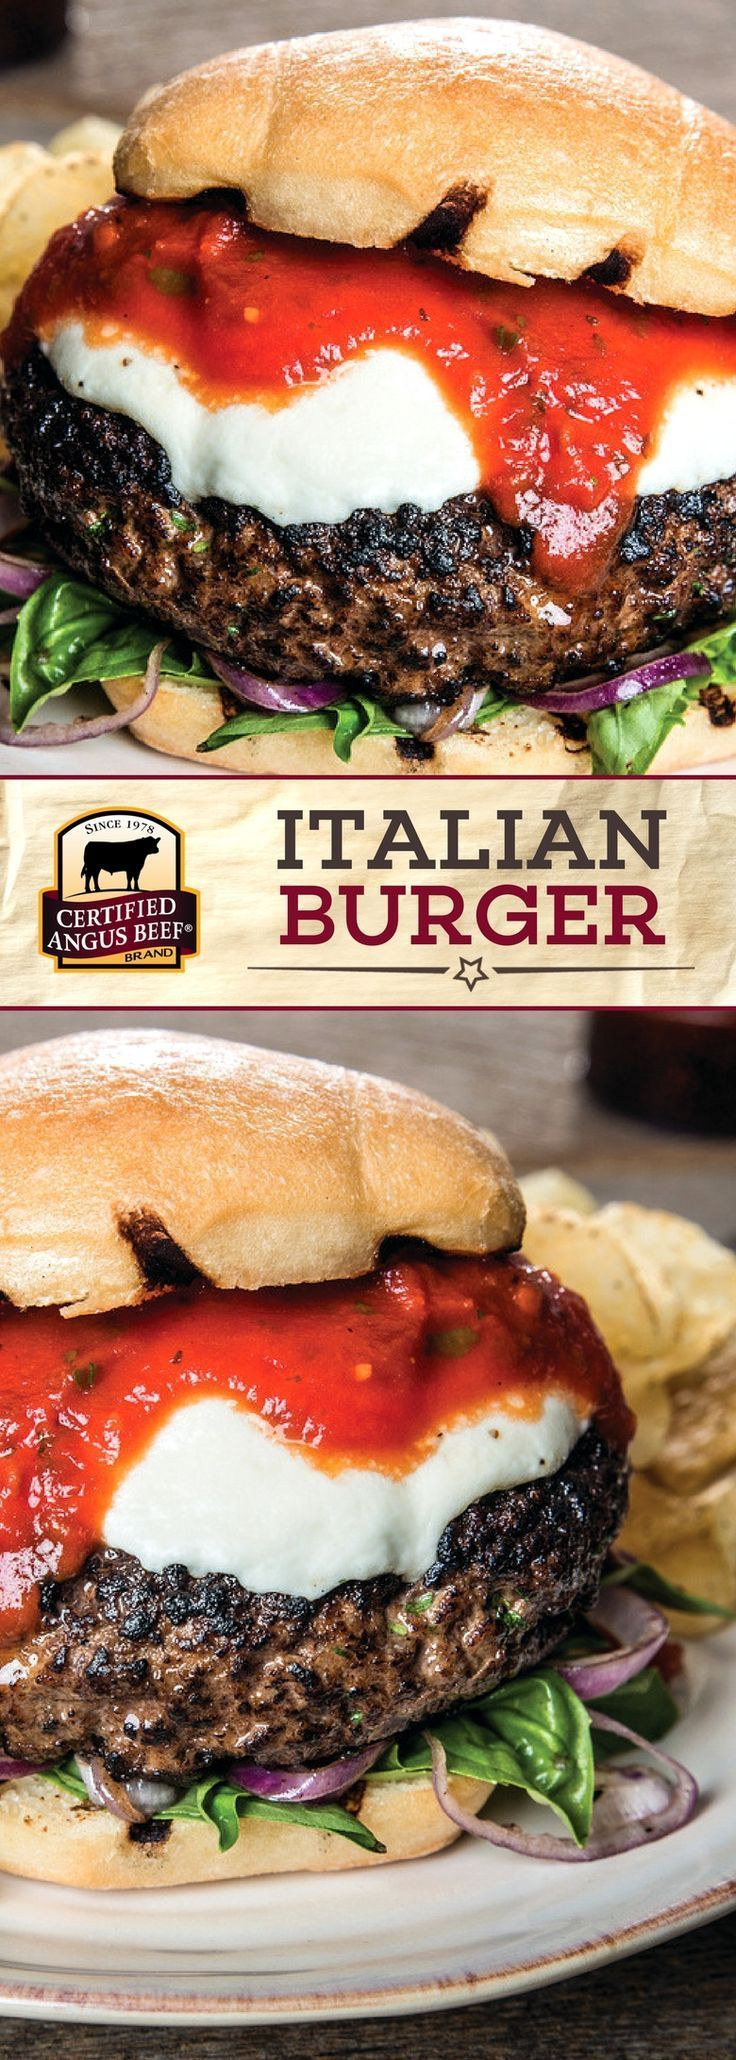 The Certified Angus Beef®️️️️️ brand Italian Burger is on a whole new LEVEL of delicious! The BEST ground chuck is combined with a flavorful blend of Italian seasoning, and is topped with fresh mozzarella and your favorite spaghetti sauce for an unbelievable burger recipe. Serve on focaccia bread for the best results! #bestangusbeef #certifiedangusbeef #beefrecipe #burgerrecipe